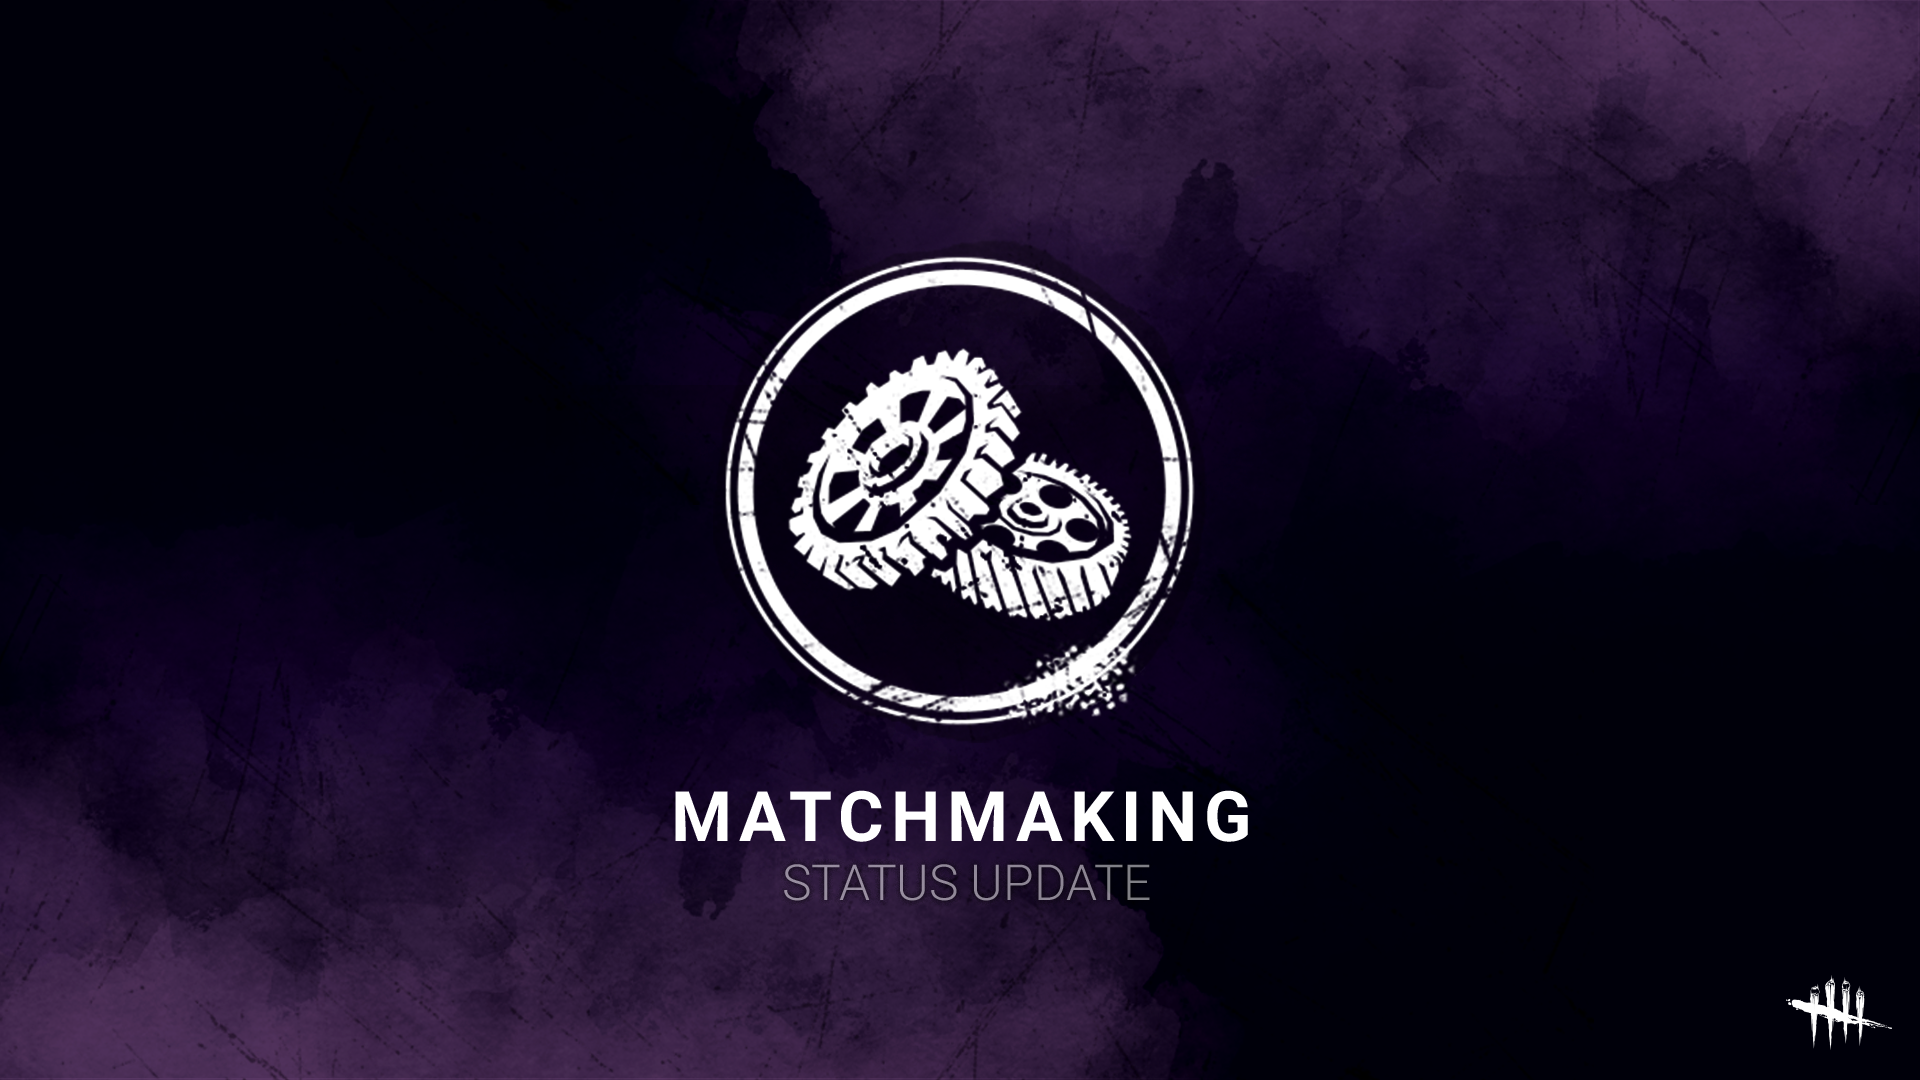 matchmaking update